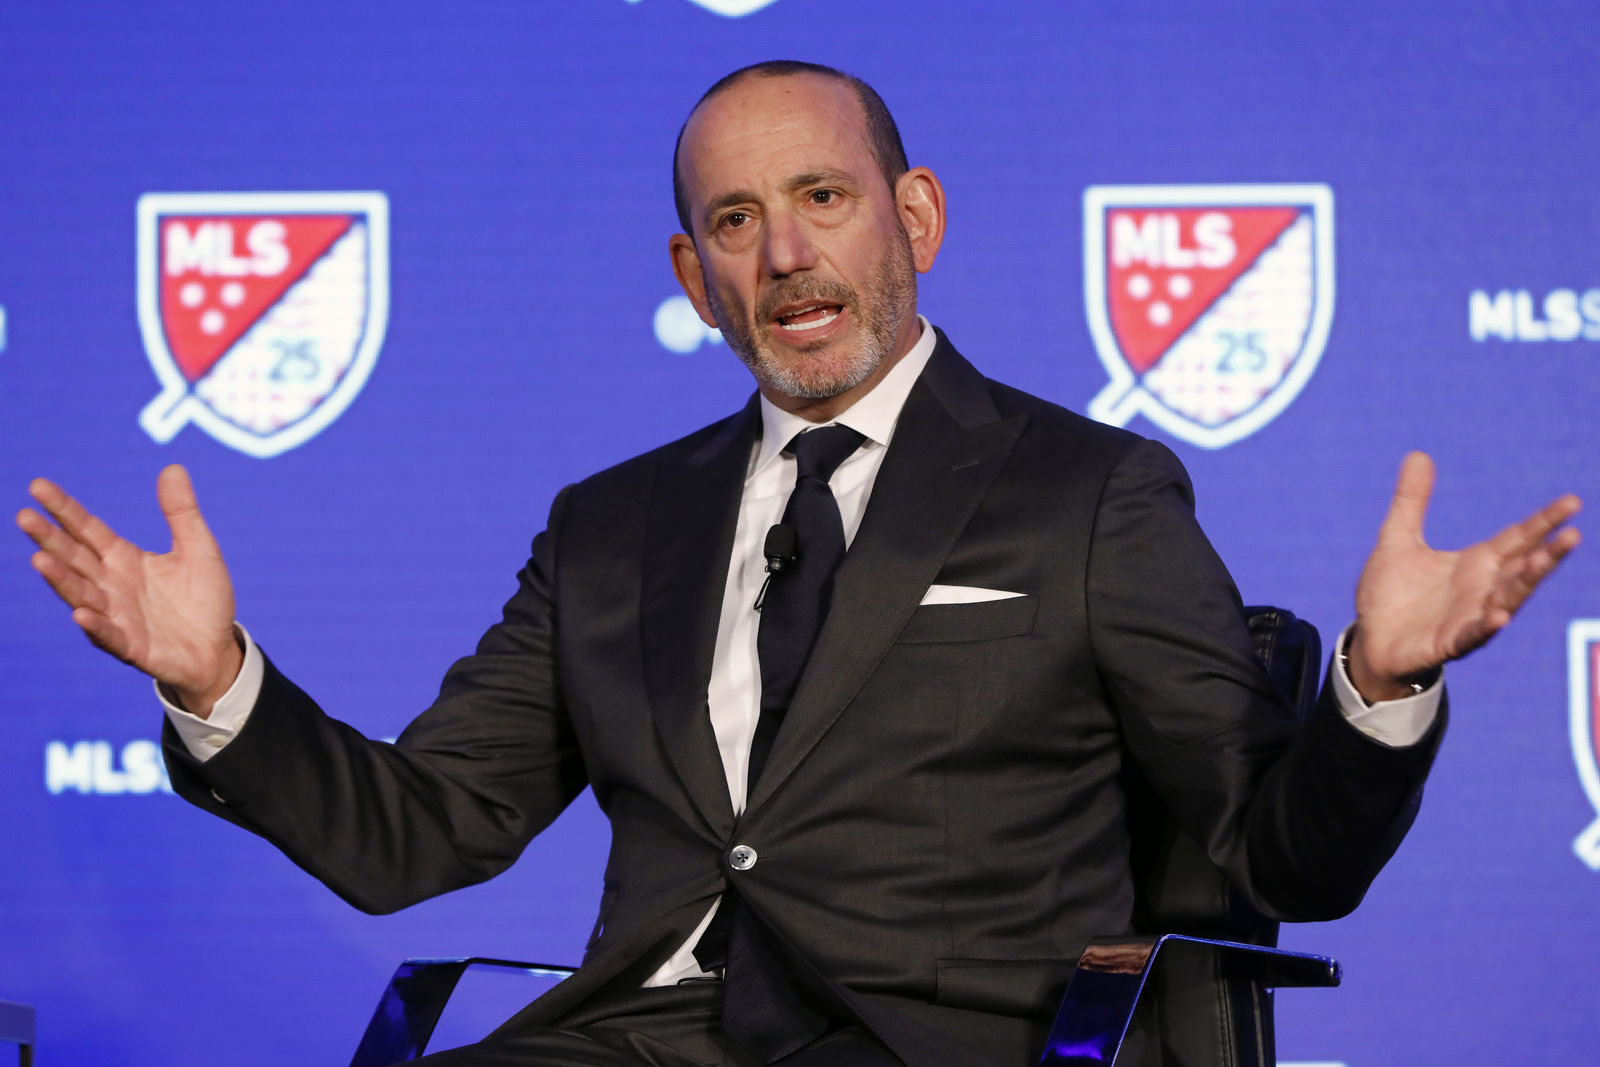 FILE - In this Feb. 26, 2020, file photo, Major League Soccer Commissioner Don Garber speaks during the leagues 25th Season kickoff event in New York. (AP Photo/Richard Drew, File)